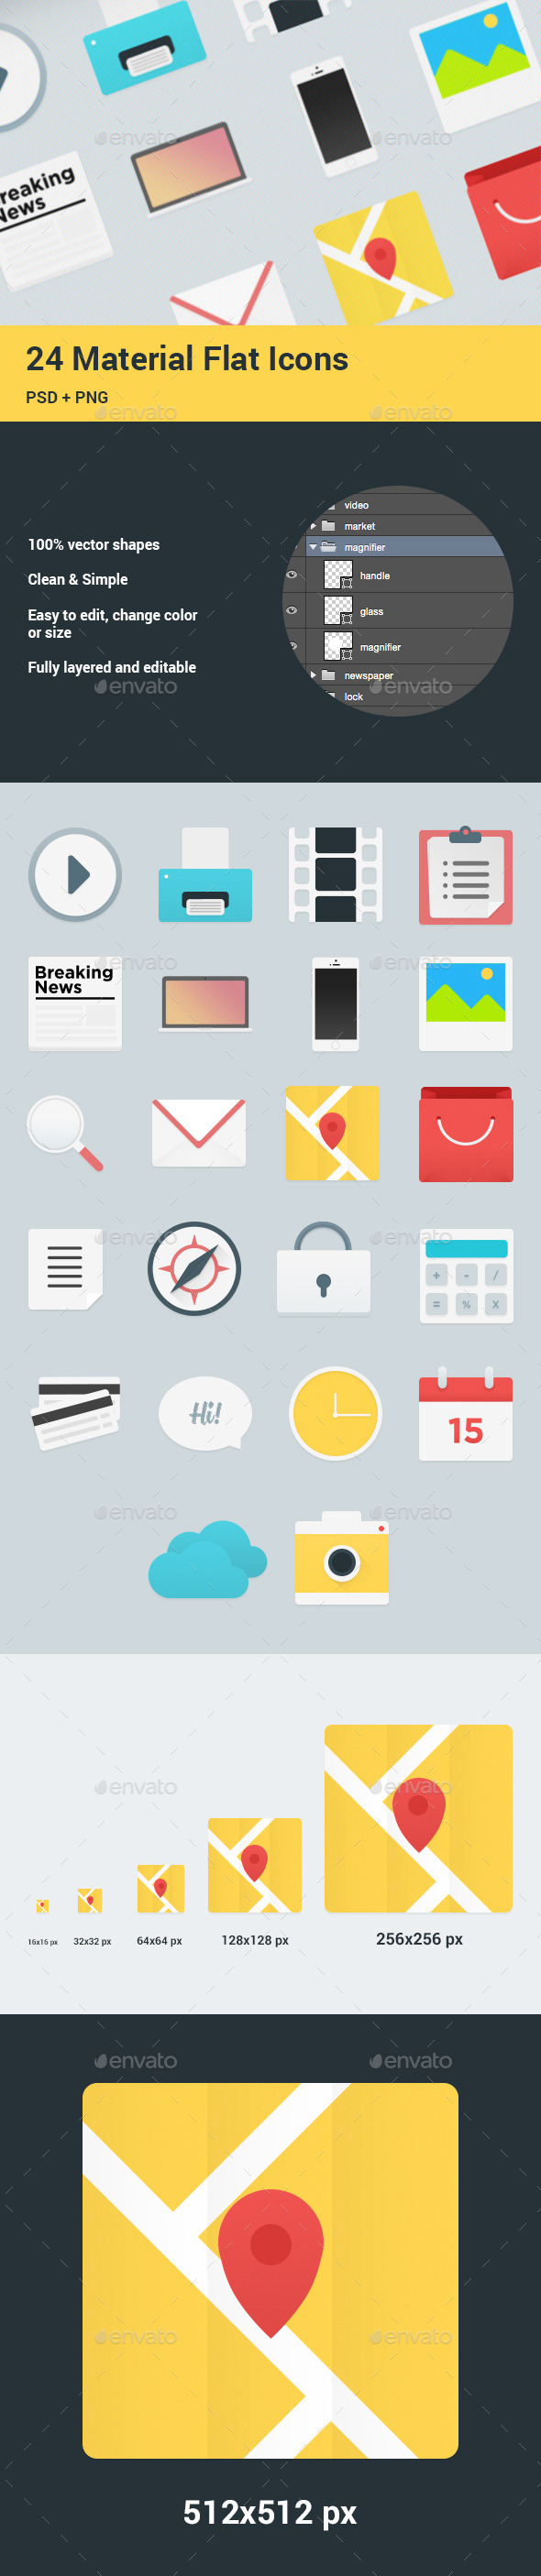 24 Flat Material Icons Set - Web Icons